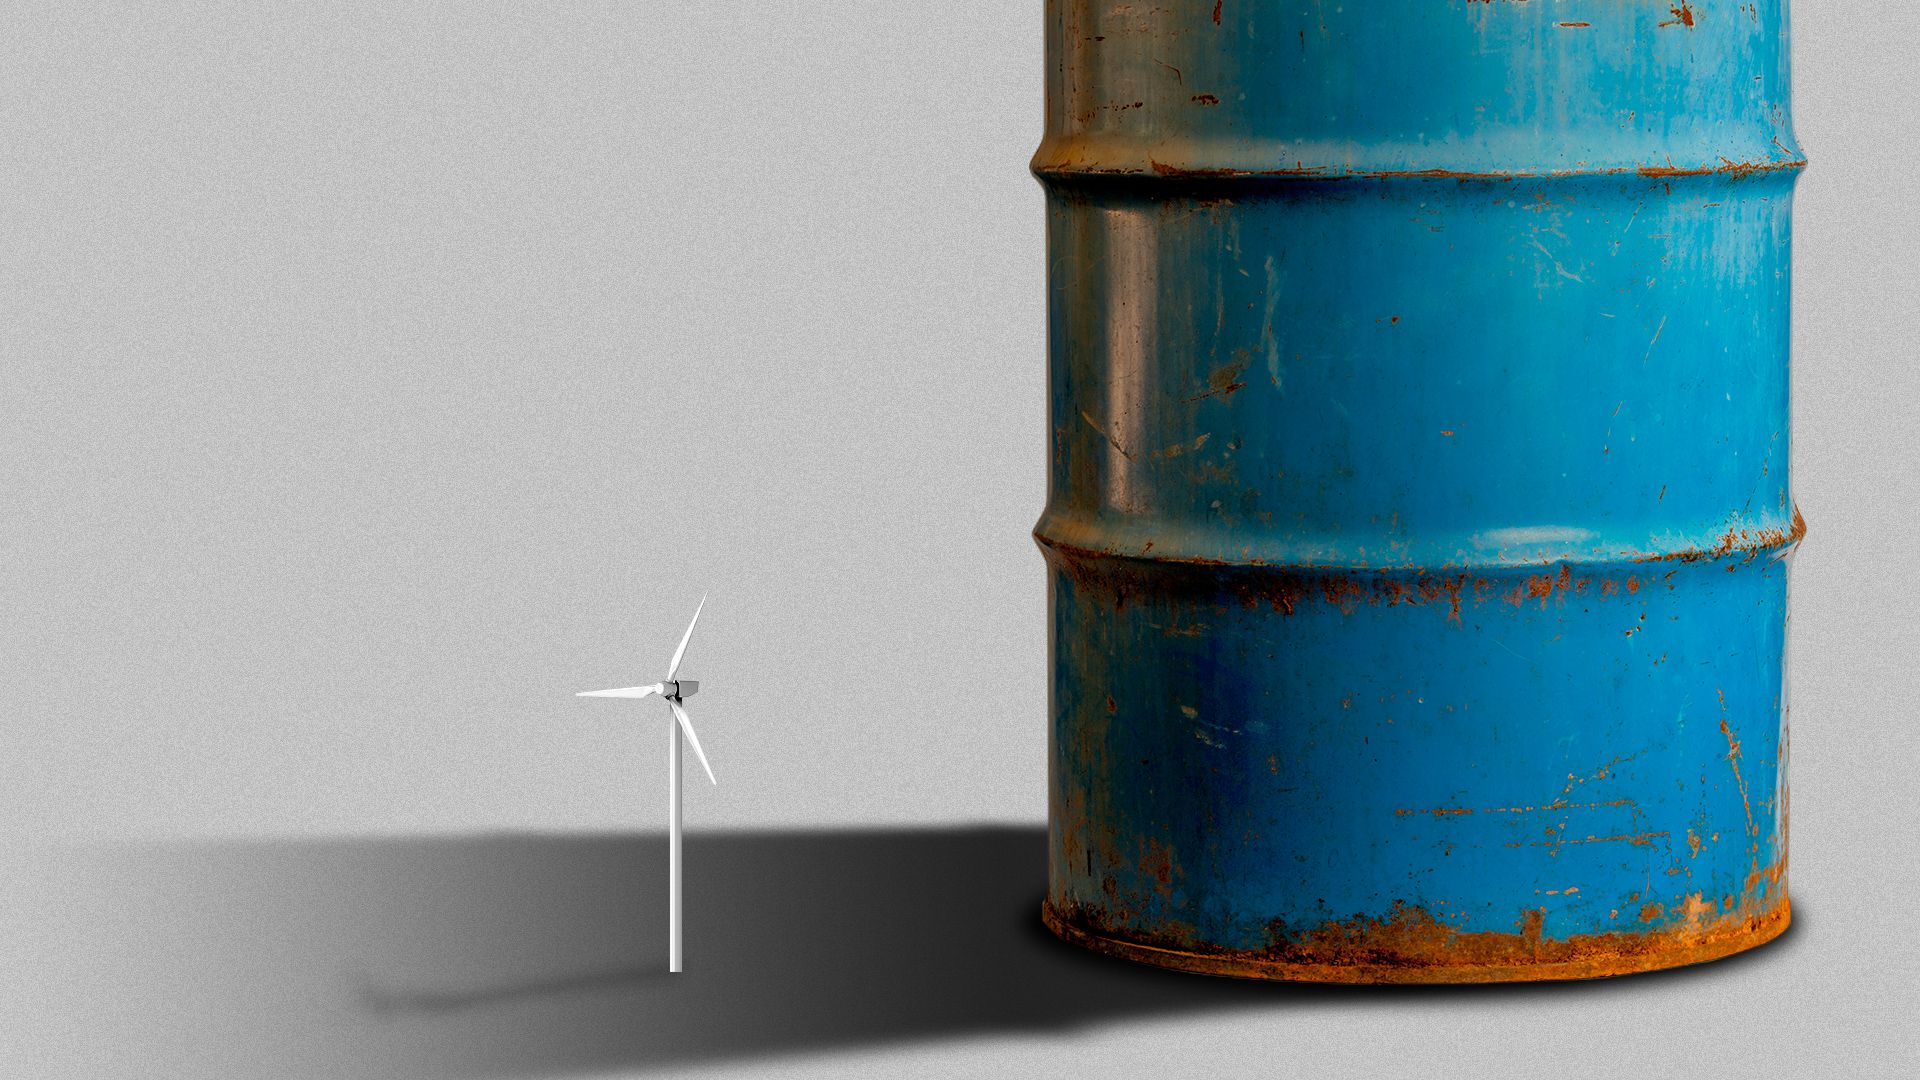 Illustration of a large oil barrel casting a shadow over a tiny wind turbine